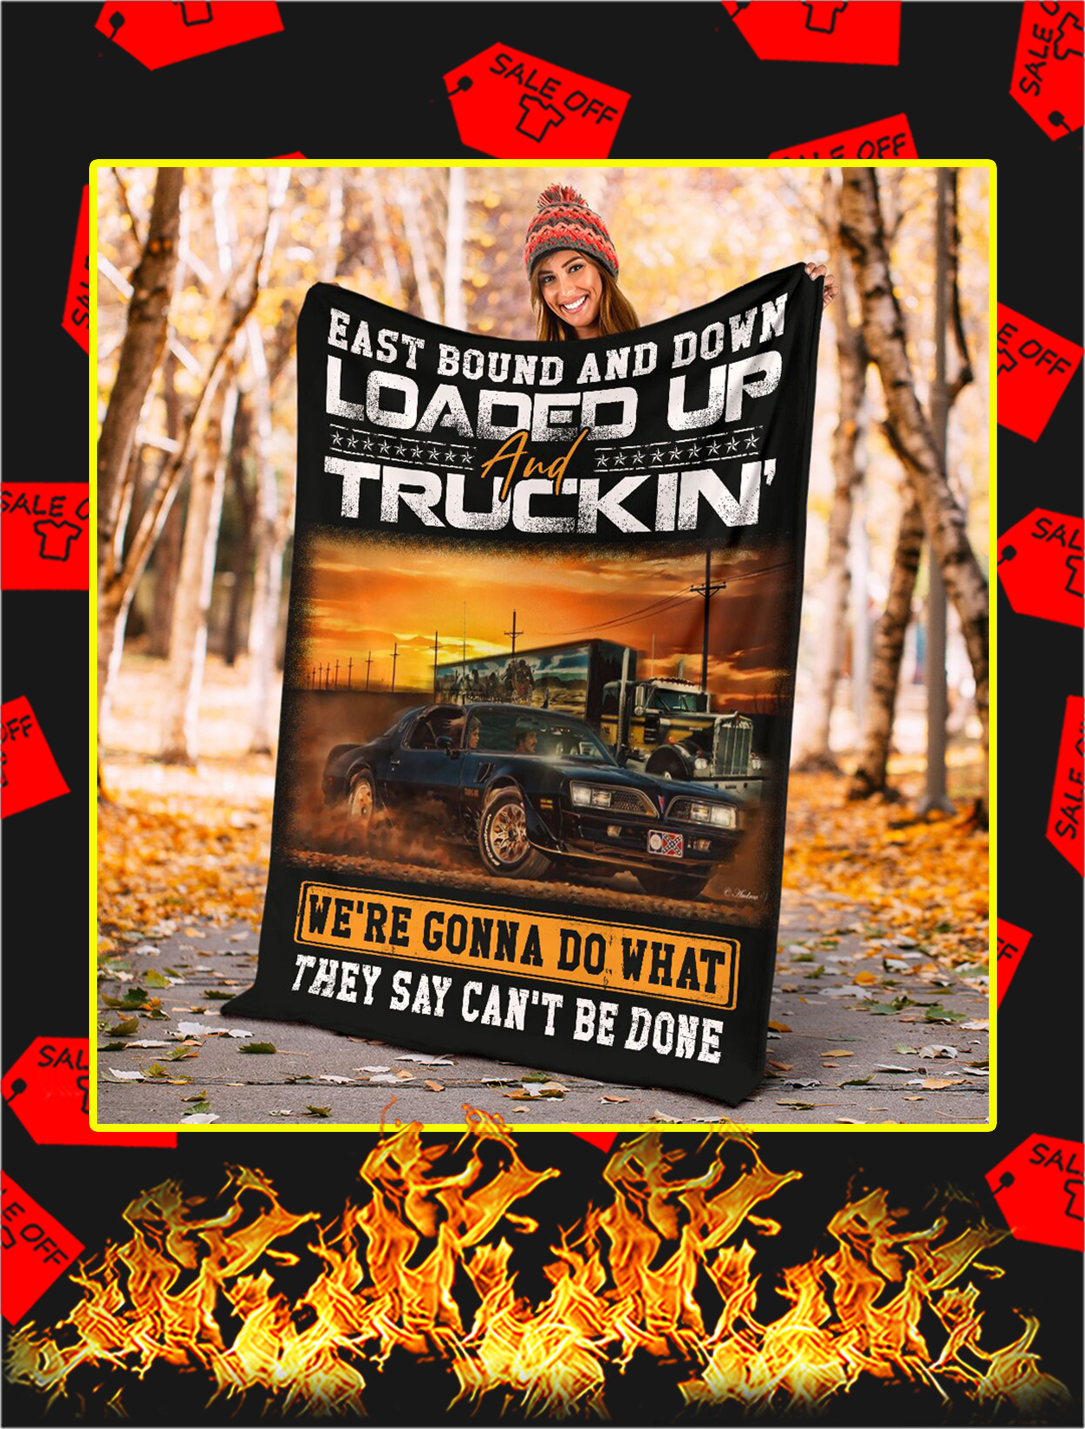 East Bound And Down Loaded Up And Truckin Blanket- youth